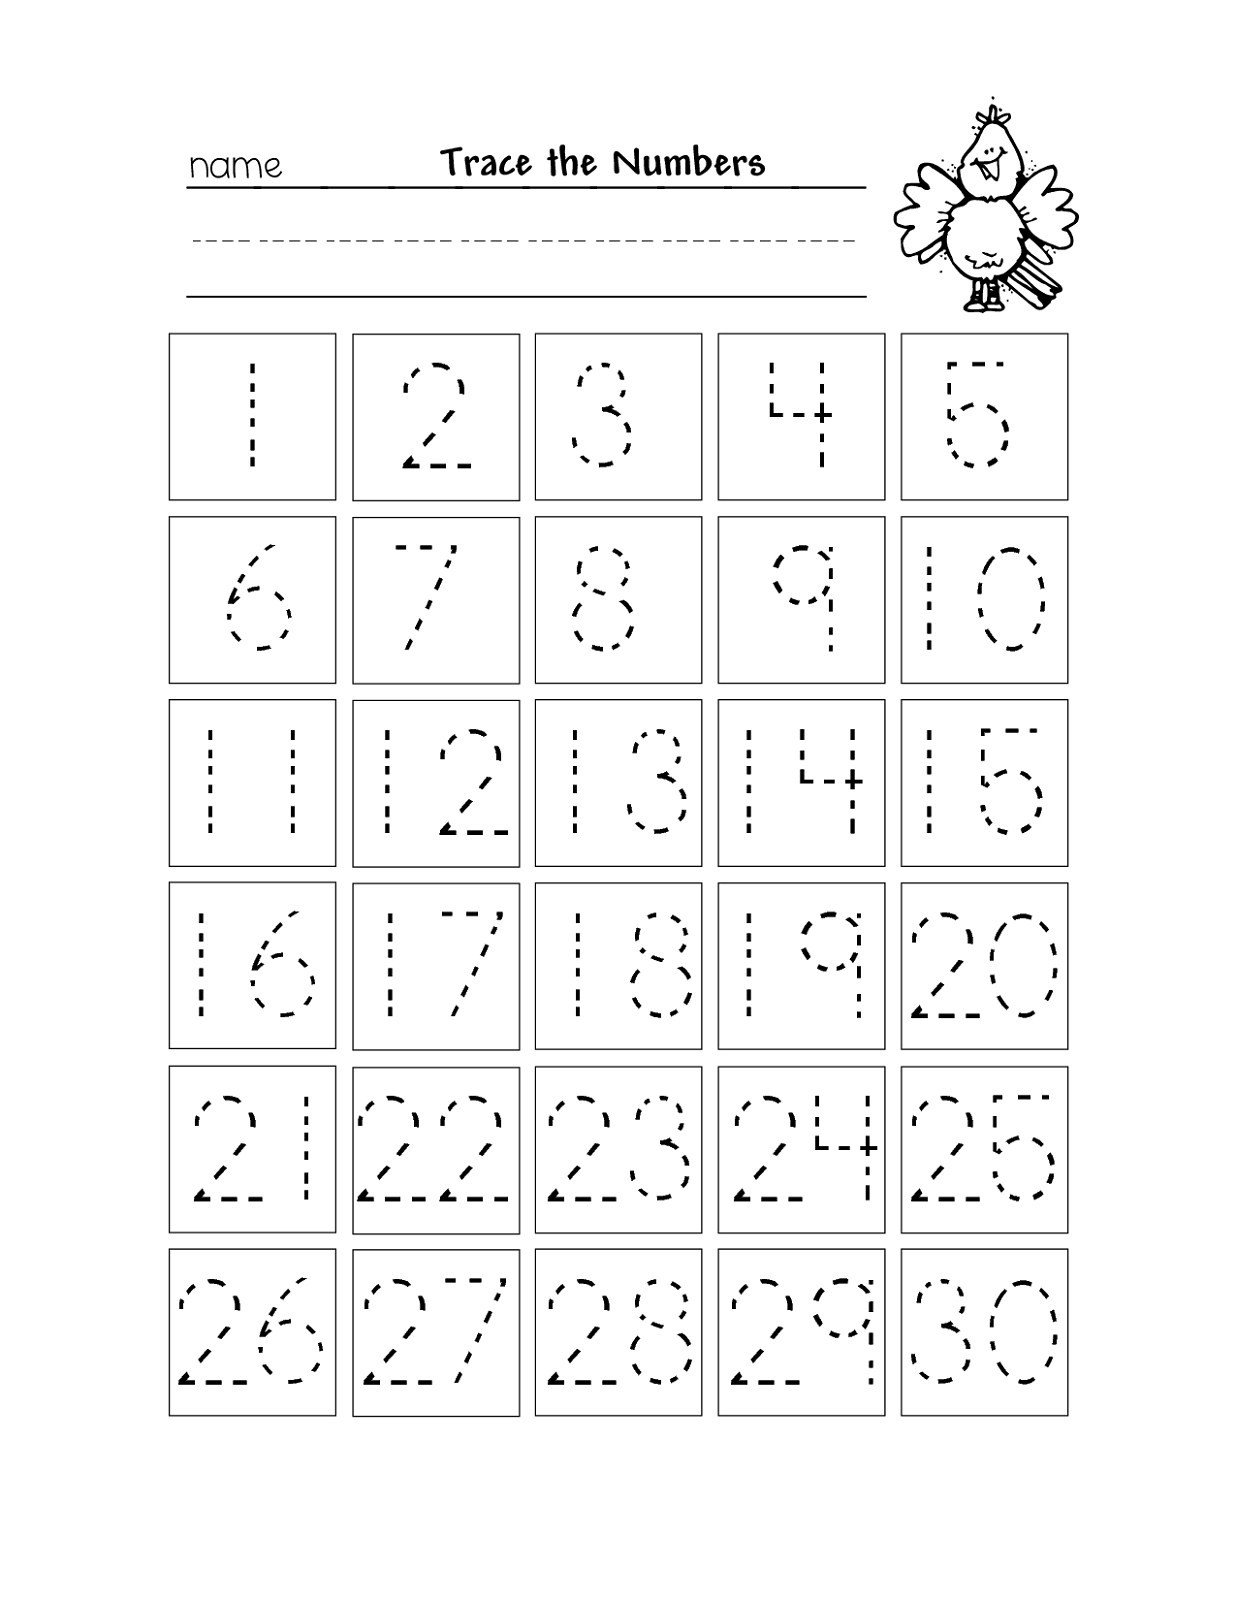 Tracing Numbers Worksheets 1 20 Worksheets Number Facts Games Free Printable Math